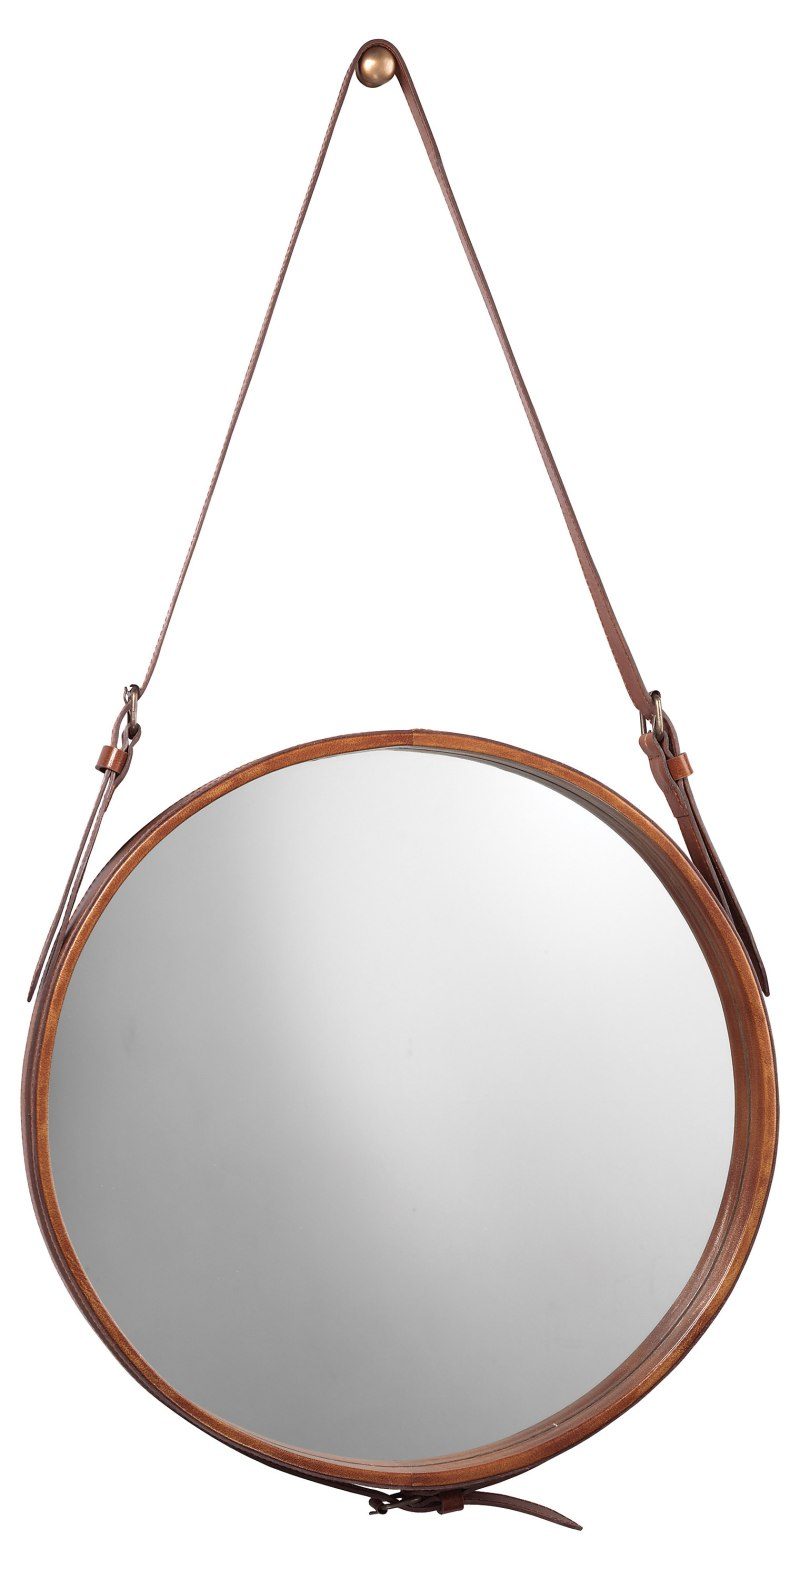 Jamie-Young-Mini-Hanging-Leather-Mirror-Cococozy-OKL